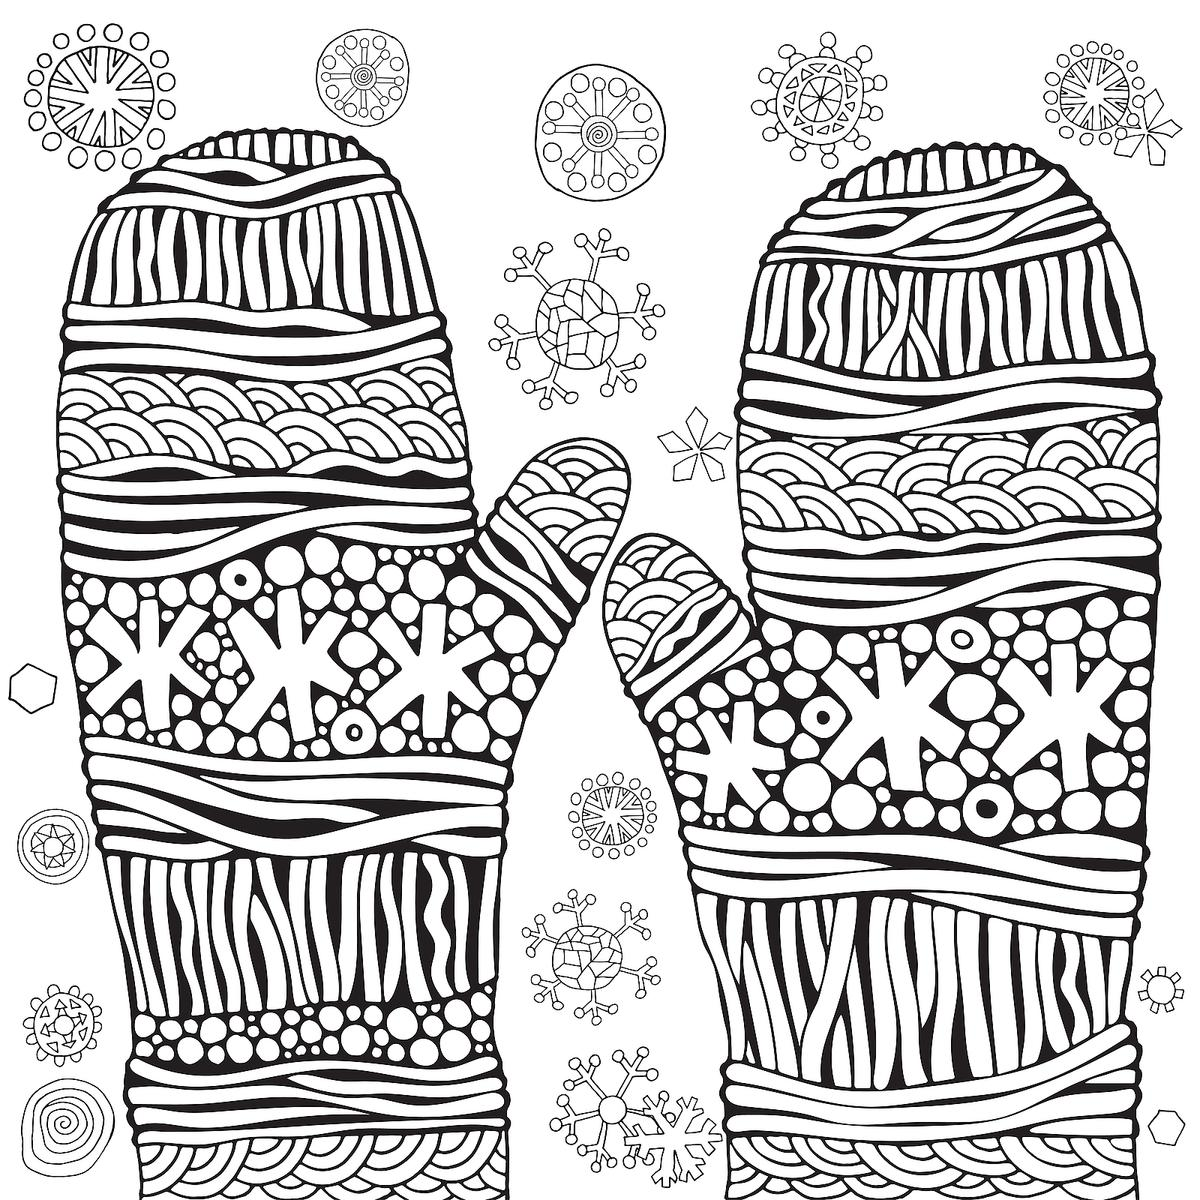 Winter Puzzle & Coloring Pages Printable Winter Themed